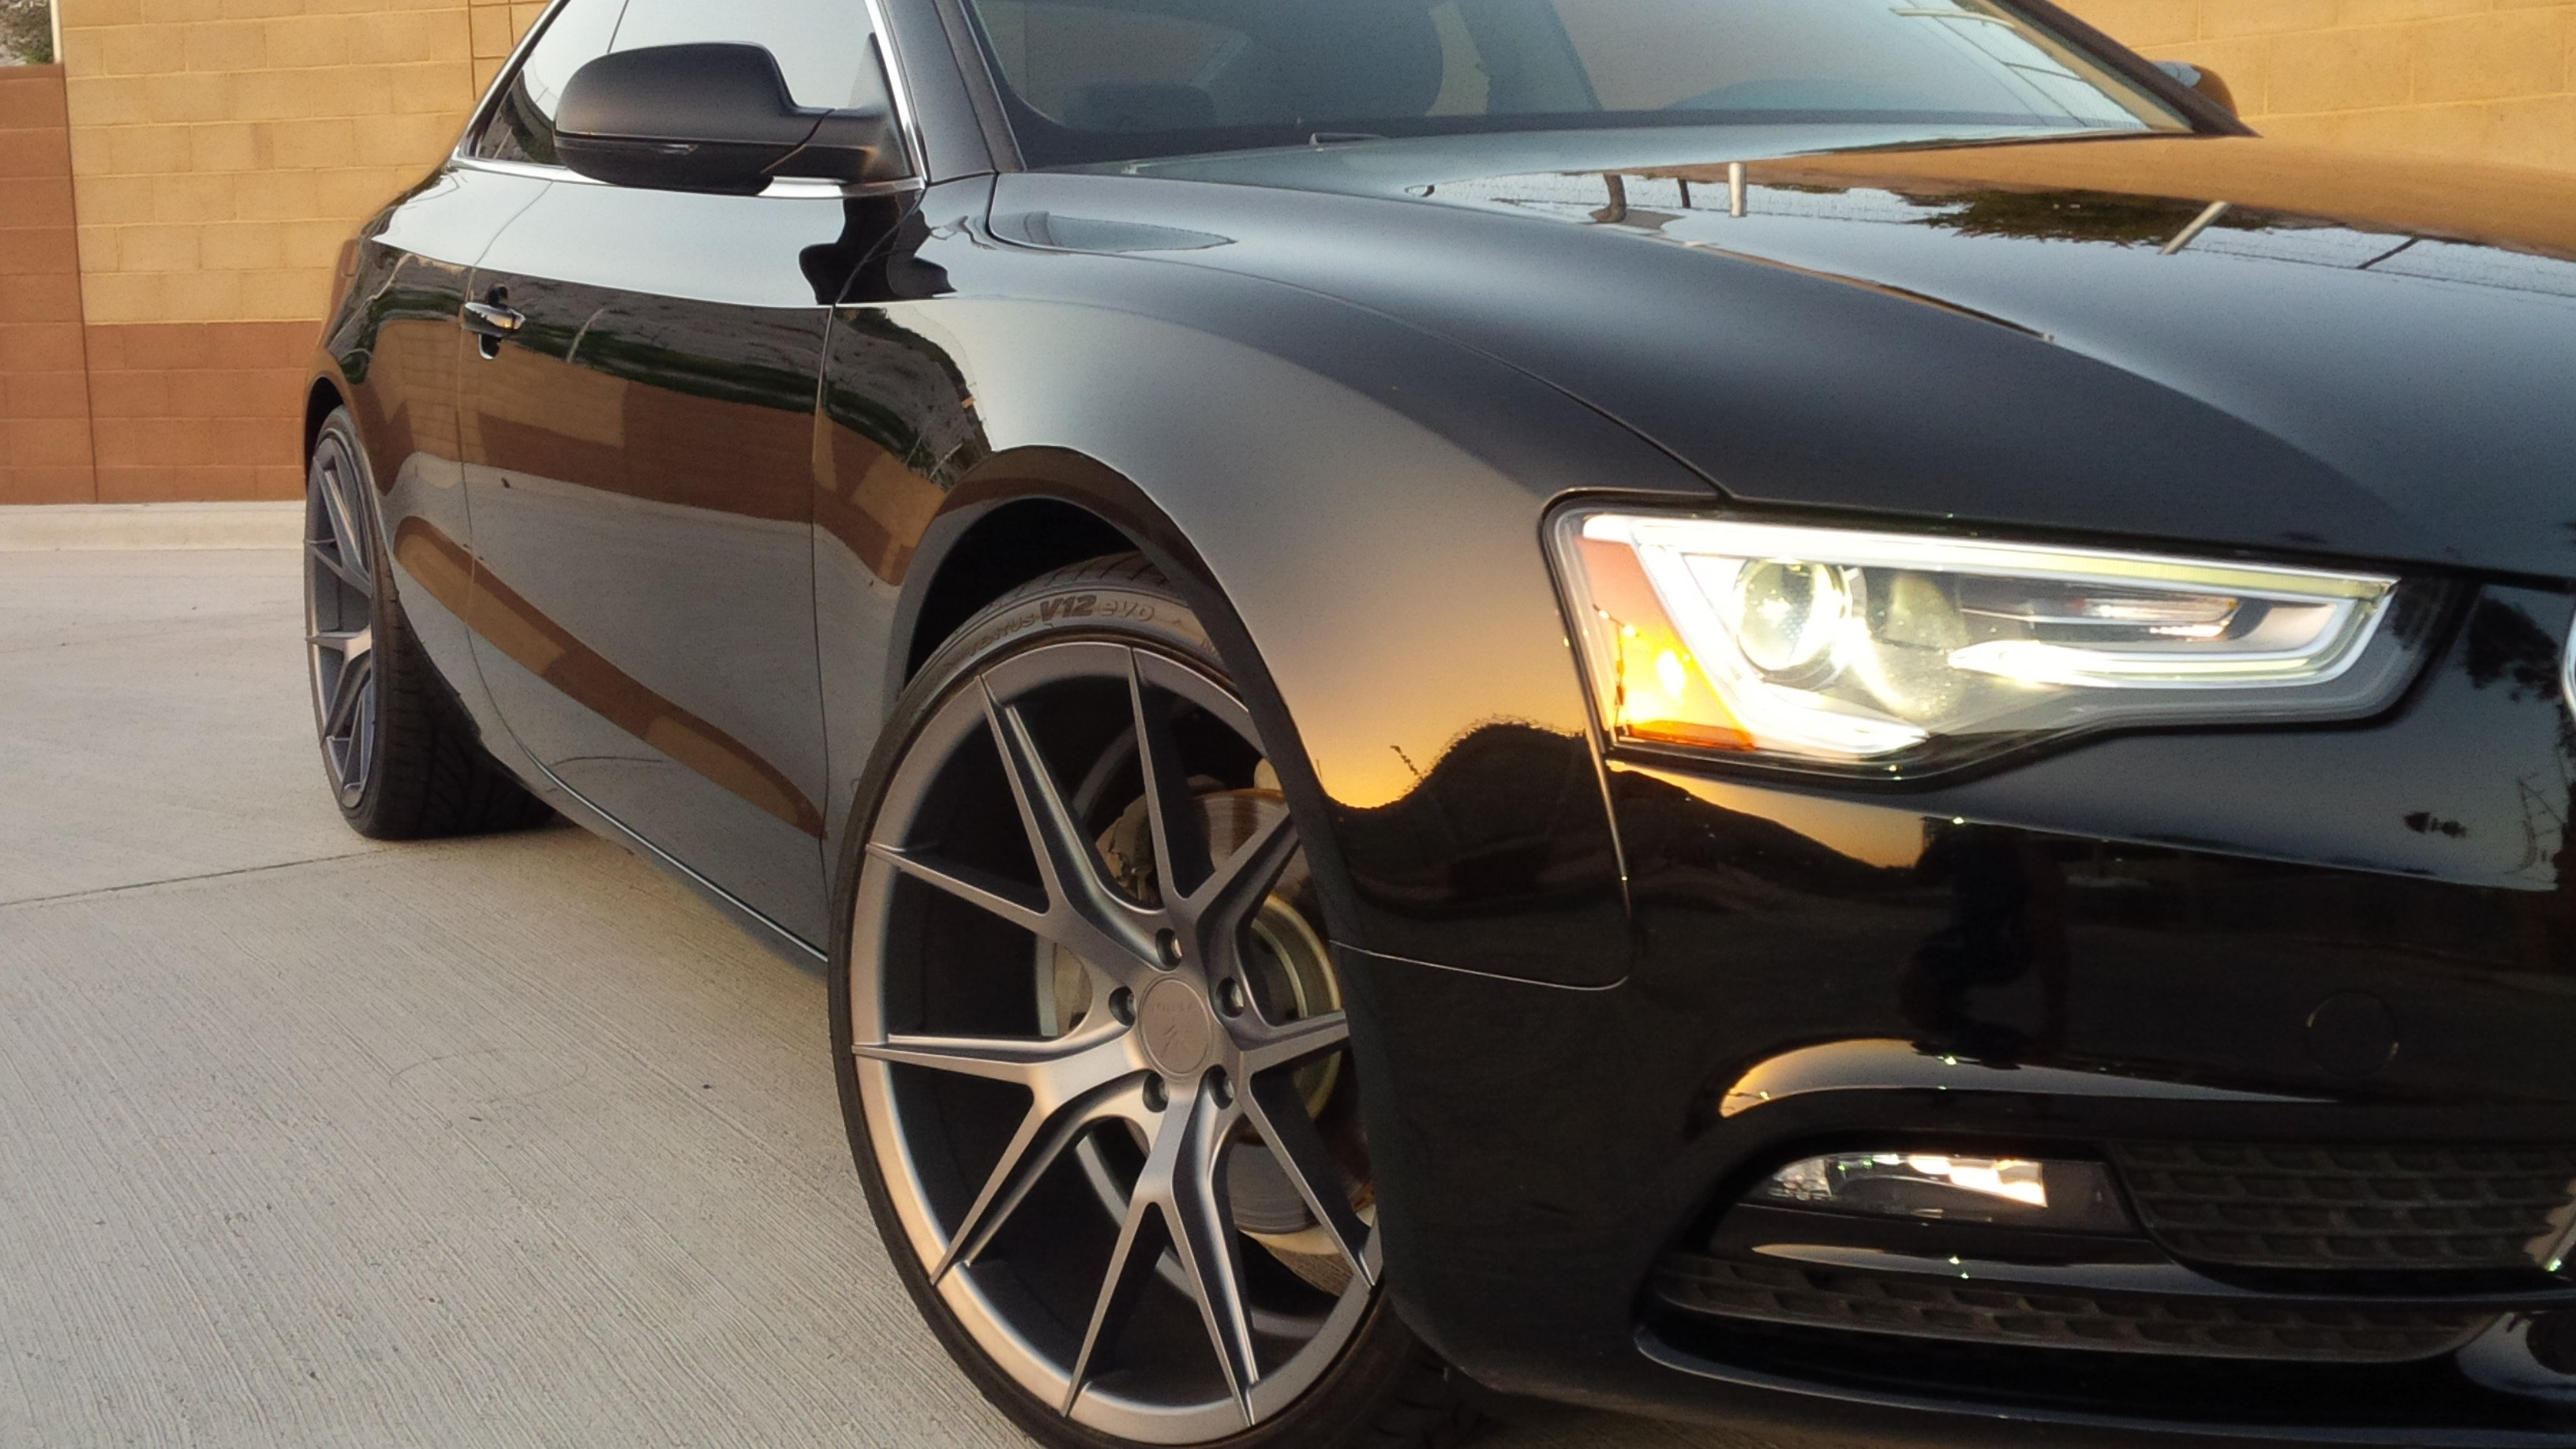 version post views photos pictures off forum videos size for larger attachment car show audi forums click westchester your image page name